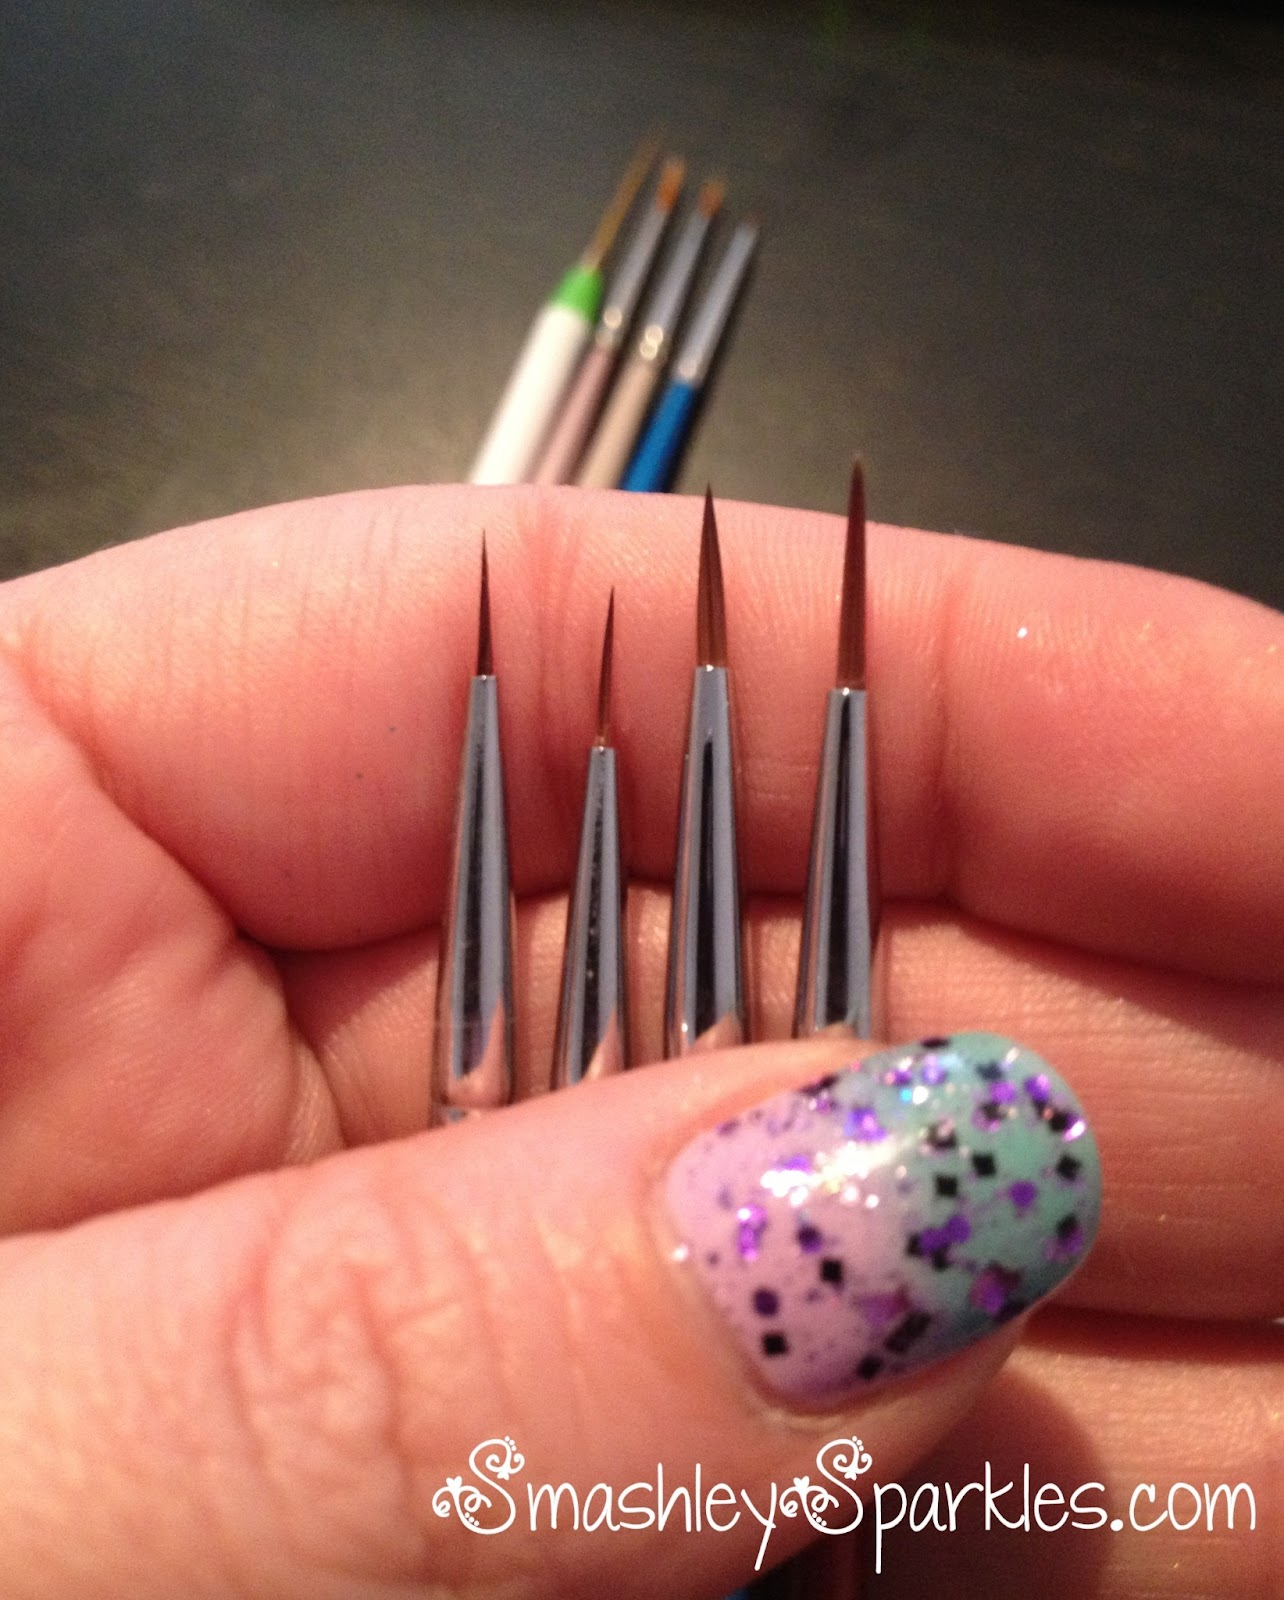 Sparkles: Jagged Rainbow Gradient with Born Pretty Nail Art Brush